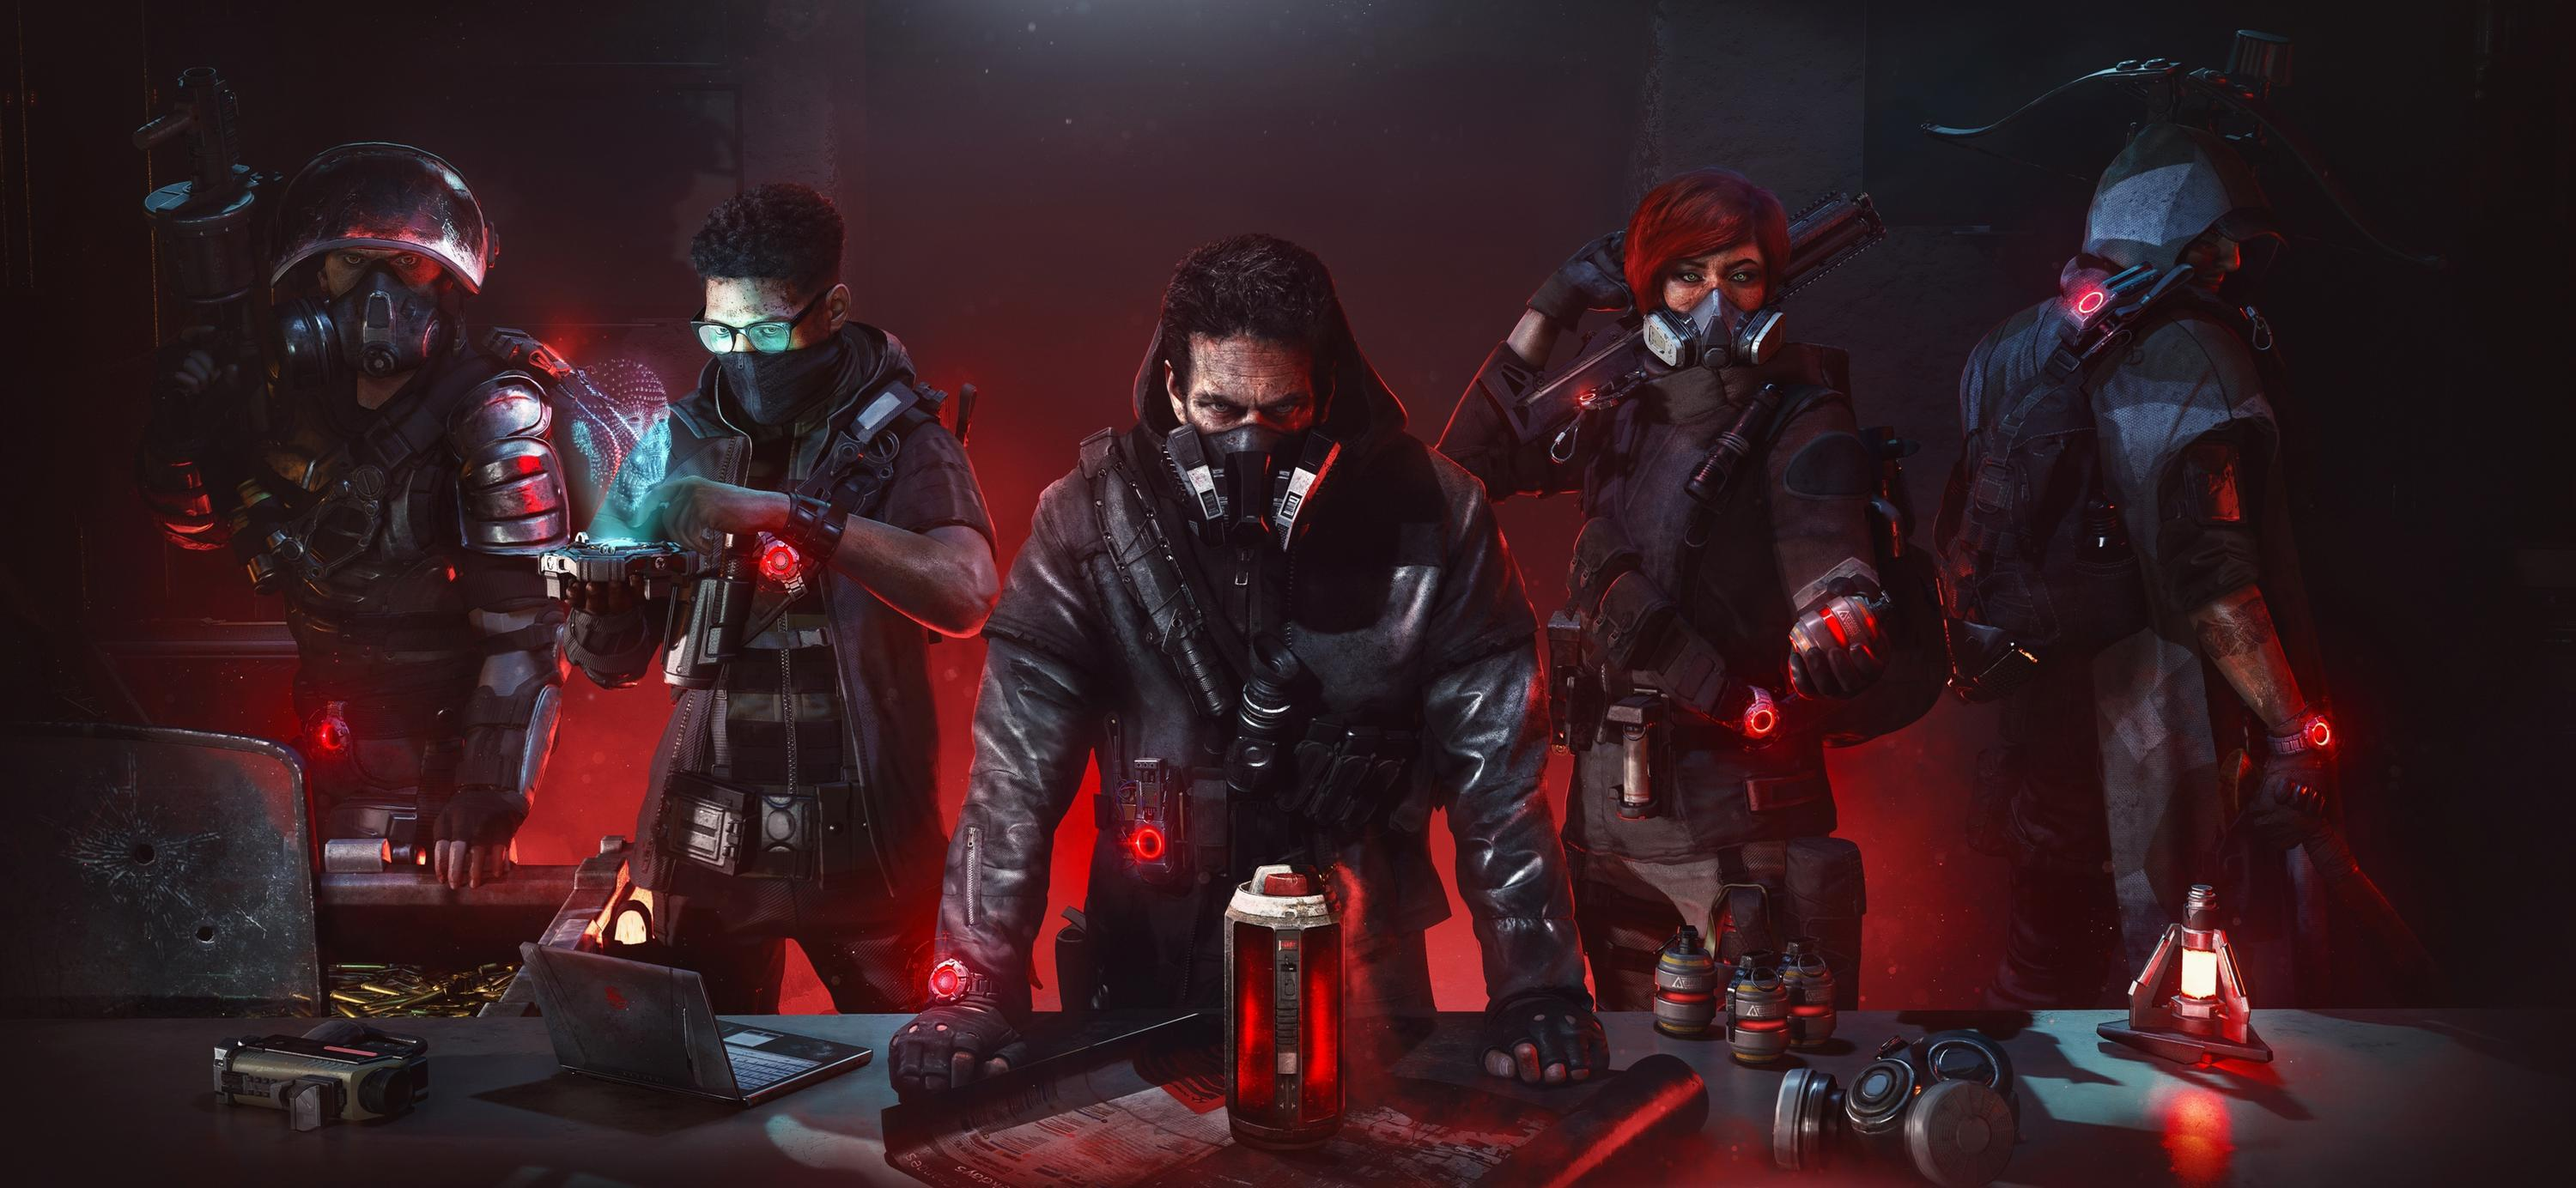 Bild zu Ubisoft, The Divison 2, Loot-Shooter, PC, PS4, Xbox One, Tom Clancy, New York, Washington